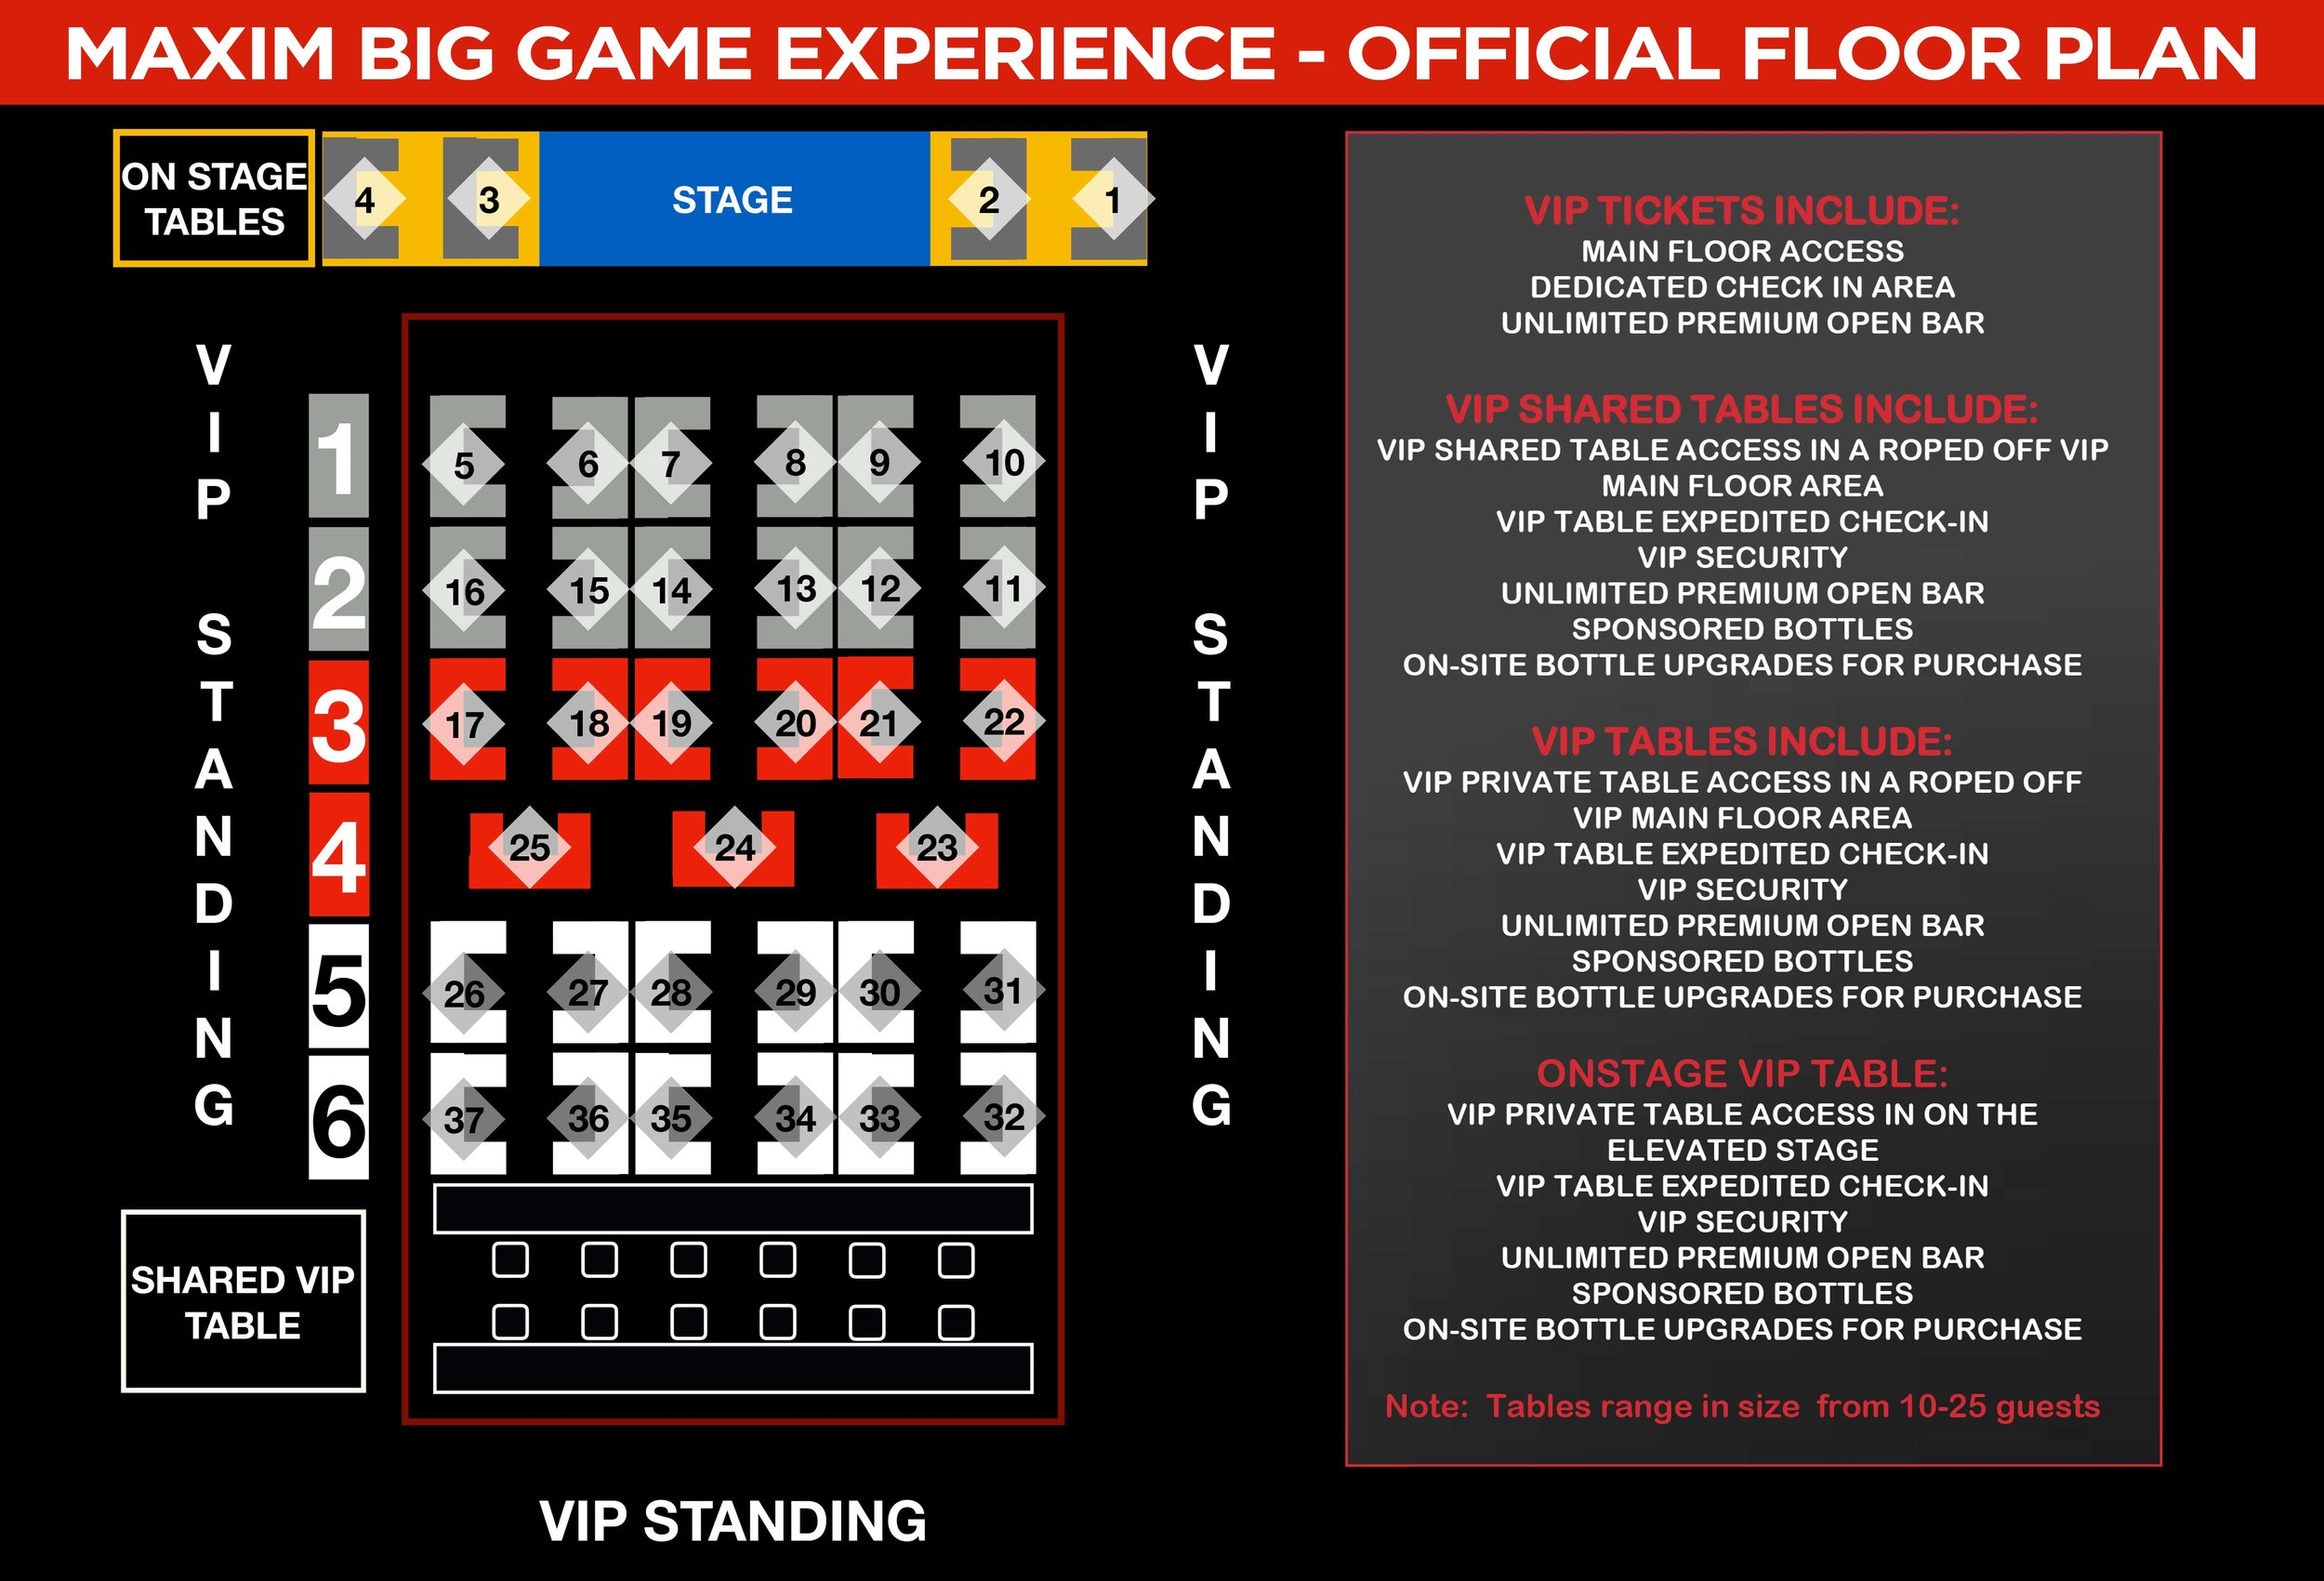 2019 Maxim Super Bowl Party Tickets and VIP Table Schematic.jpg